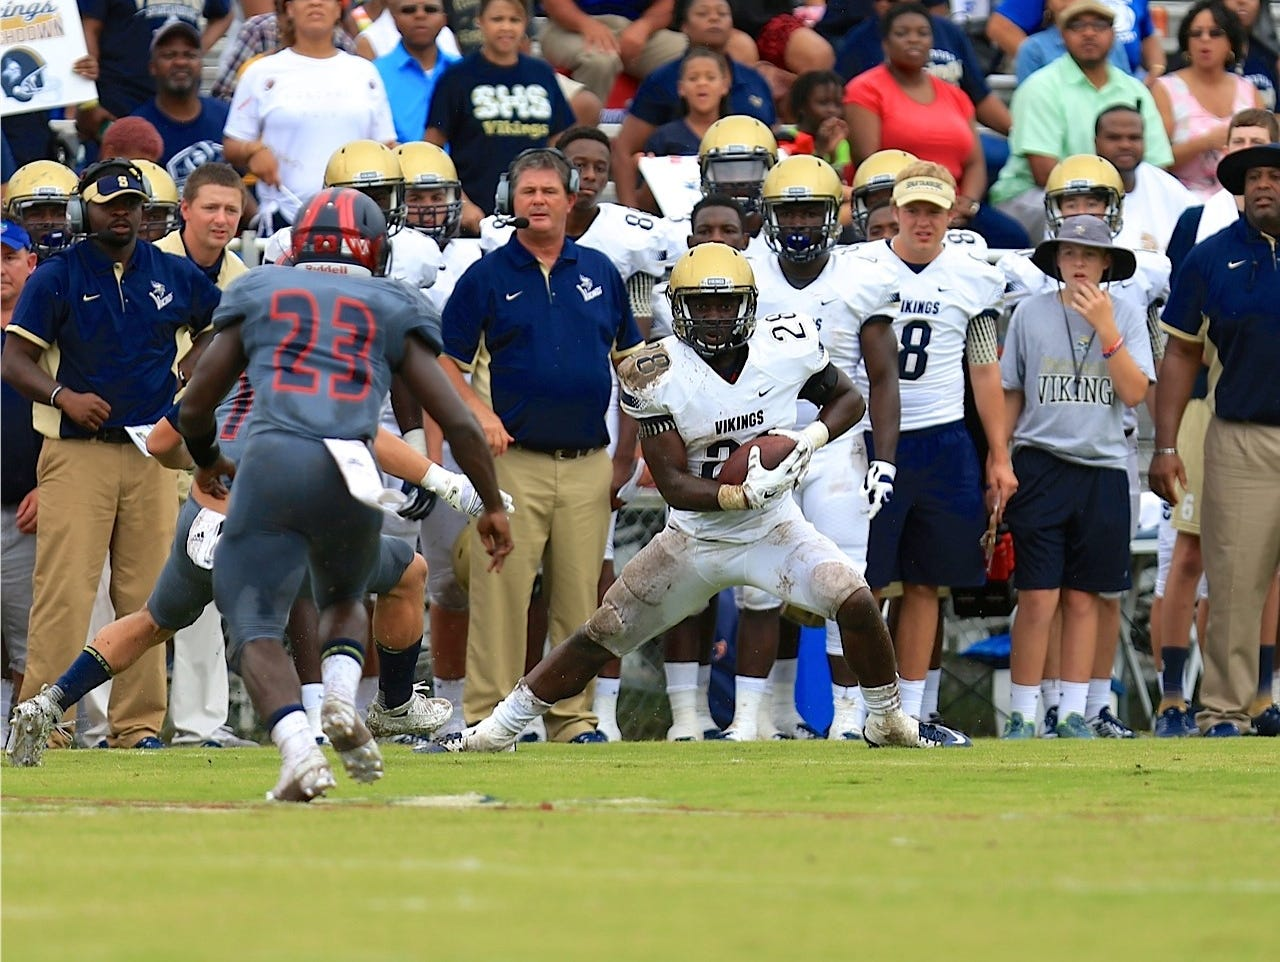 Spartanburg running back Tavien Feaster was too much for Wakulla too handle Saturday. Feaster feasted, especially in the passing game with over 100 yards receiving while scoring three touchdowns.